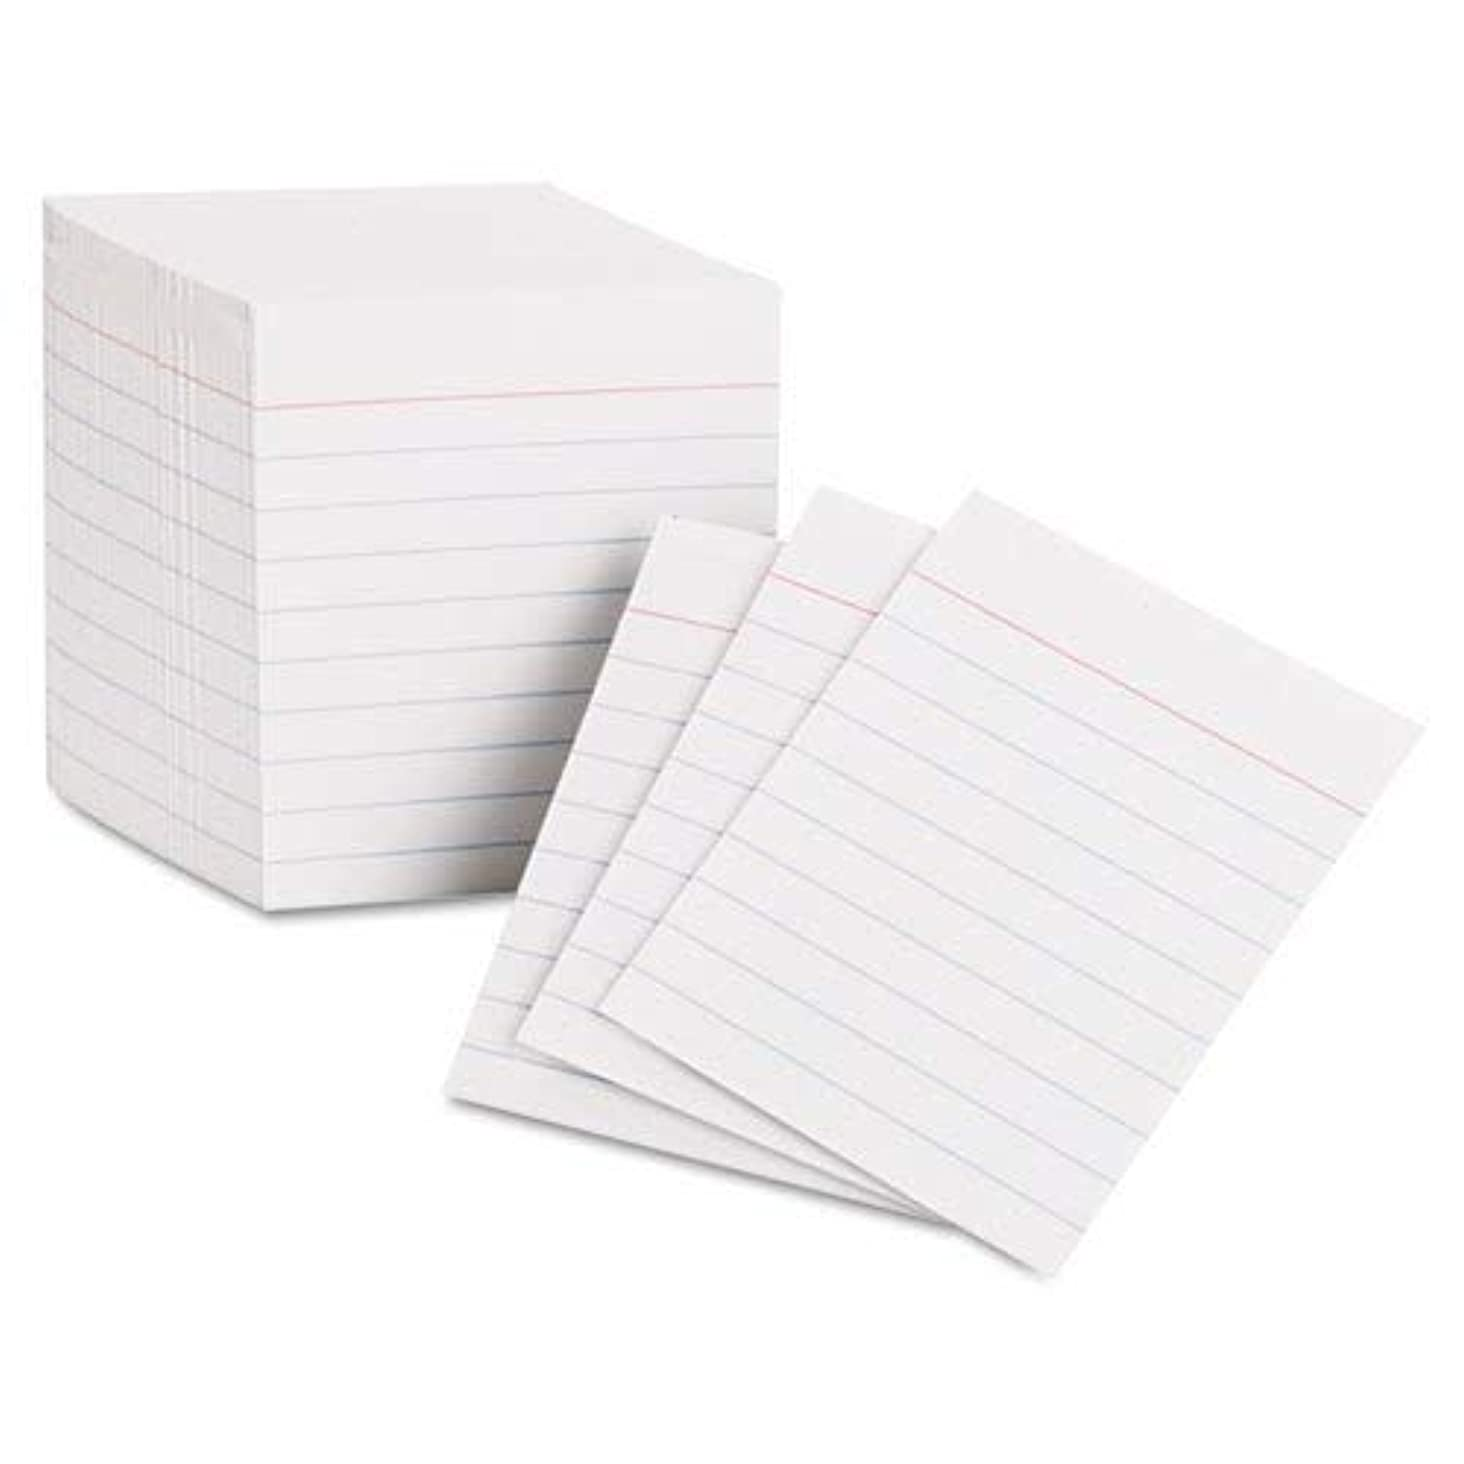 Oxford Mini Index Cards 3 Inch X 2.5 Inches 200 Cards per Package (2 Pack)